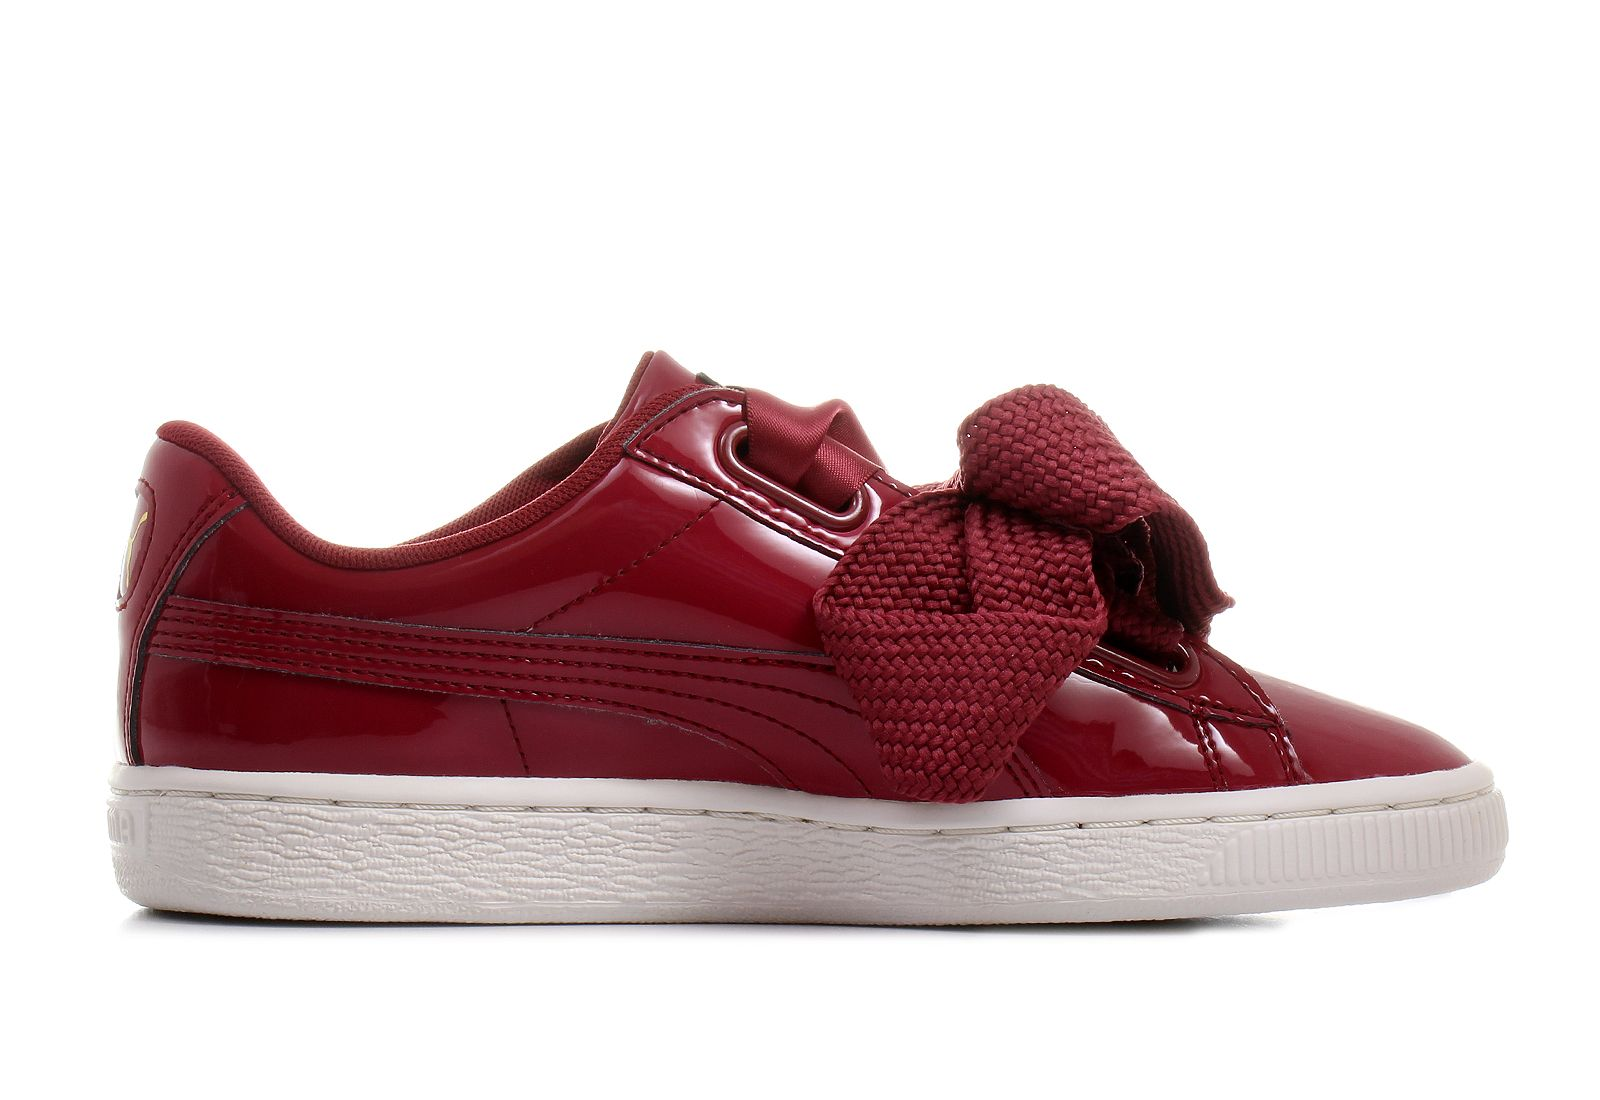 Puma Basket Heart (Patent) Women's Shoes 36307305 Red